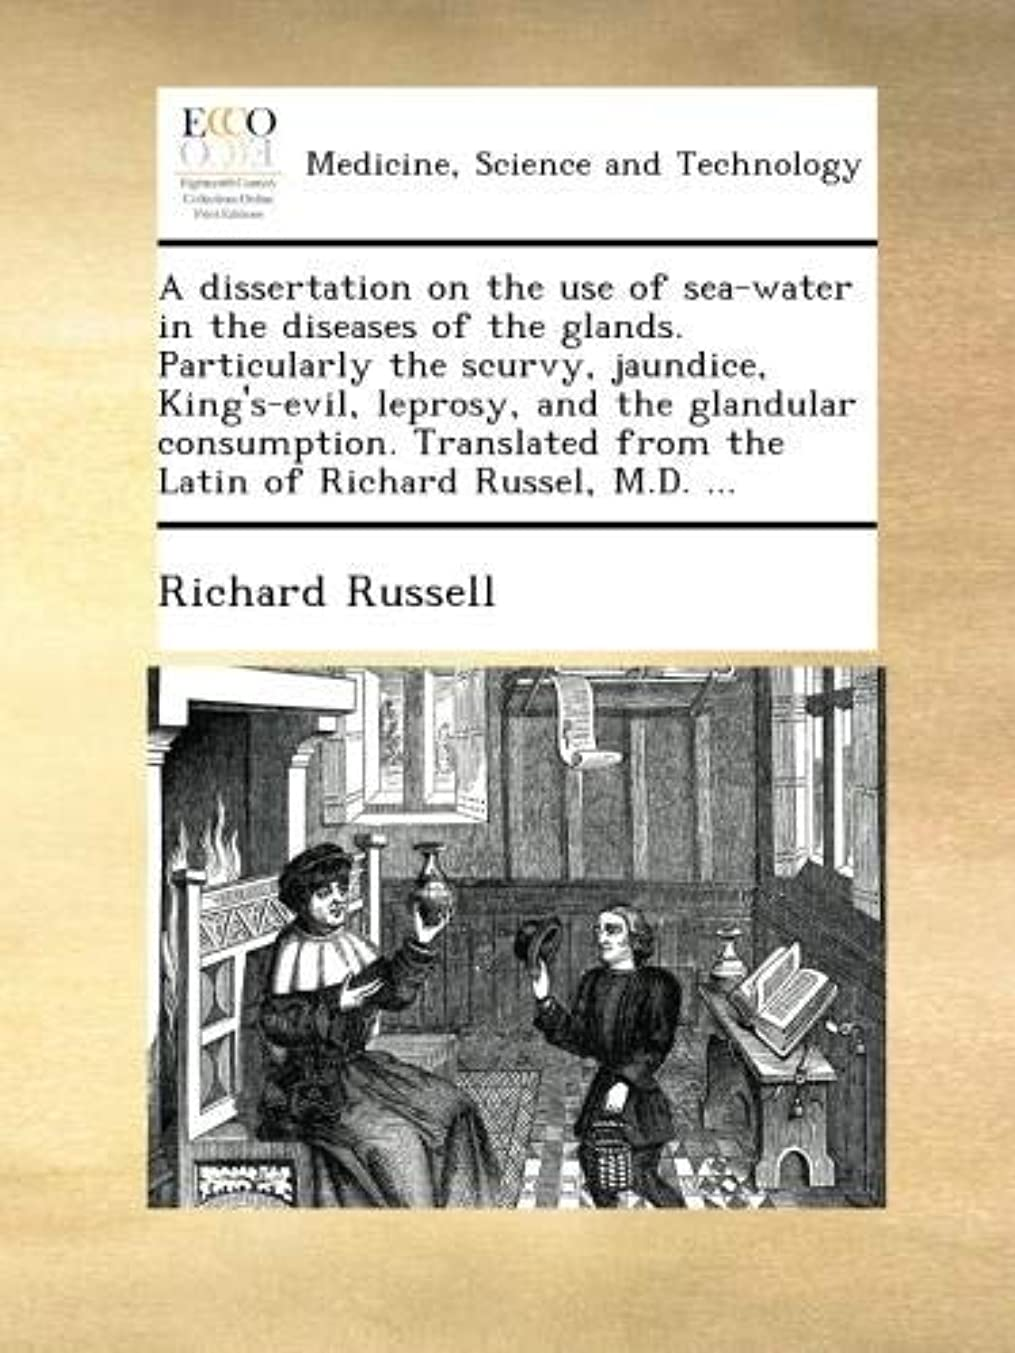 回転する水曜日探偵A dissertation on the use of sea-water in the diseases of the glands. Particularly the scurvy, jaundice, King's-evil, leprosy, and the glandular consumption. Translated from the Latin of Richard Russel, M.D. ...